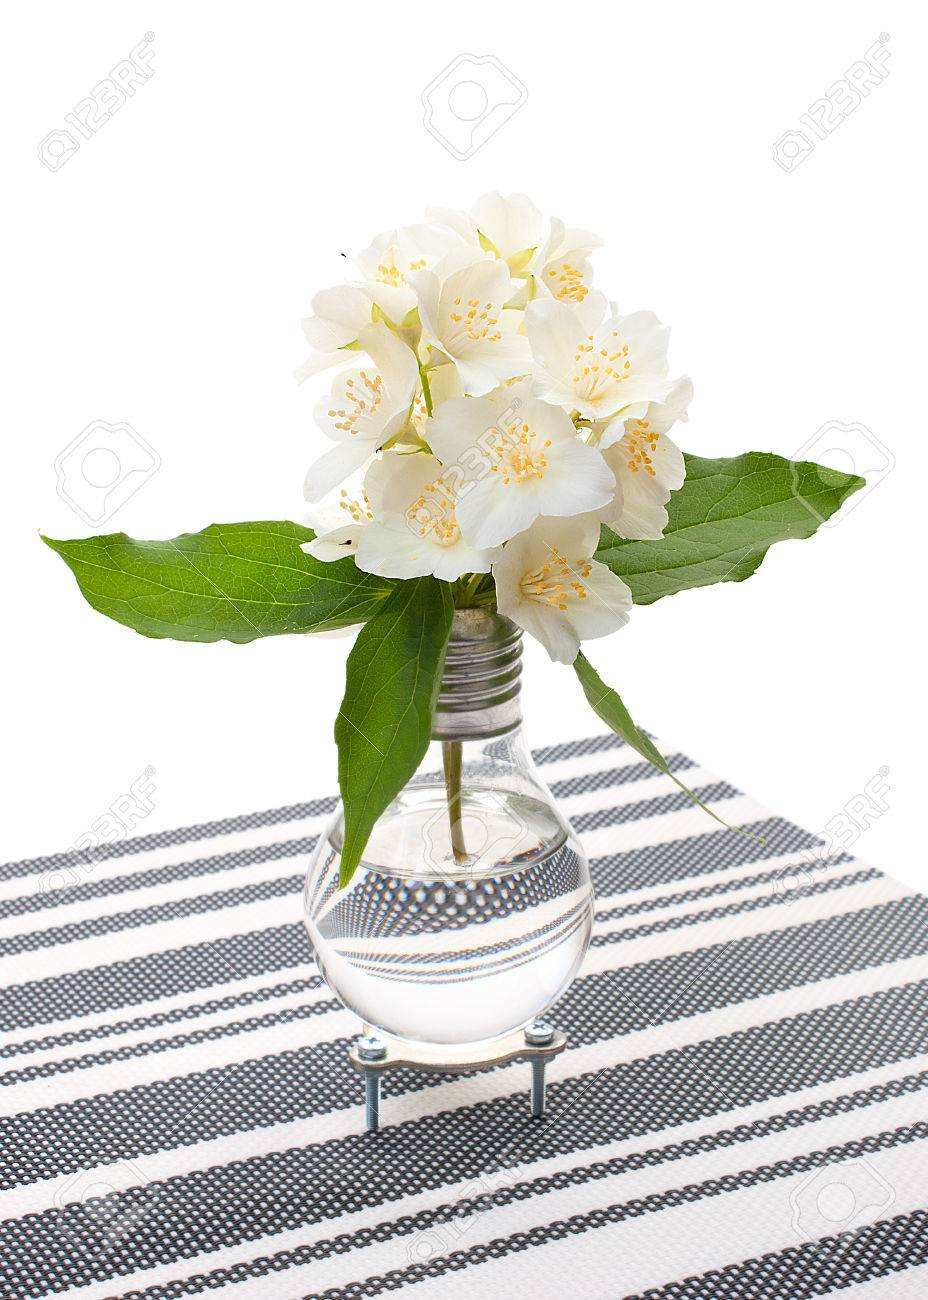 266 & Handmade light bulb vase with jasmine flowers on decorative napkin..